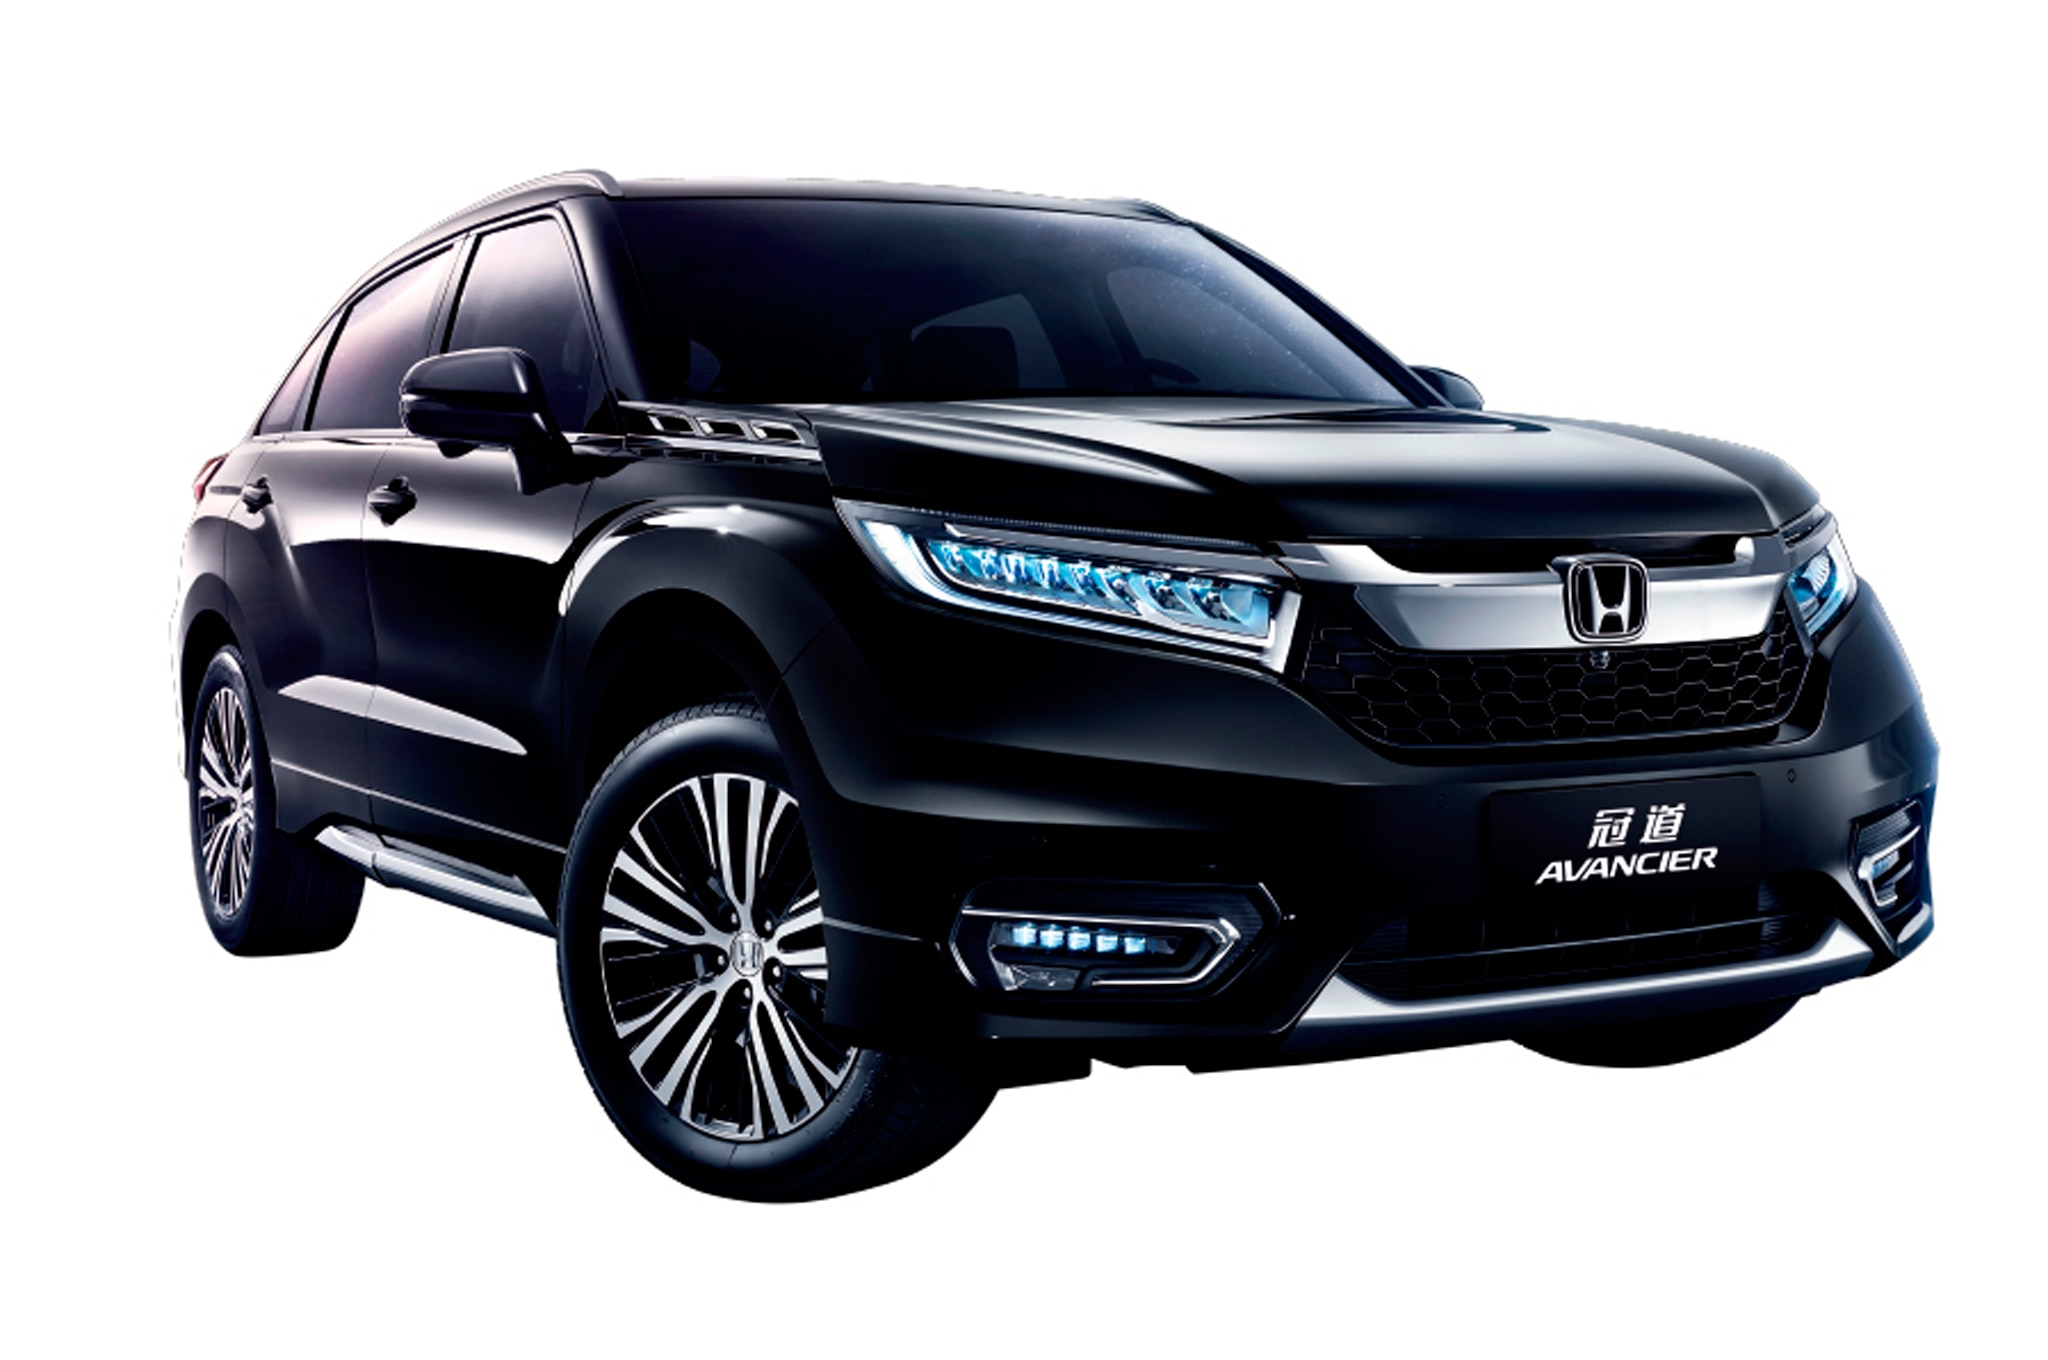 flagship honda avancier suv revealed in beijing. Black Bedroom Furniture Sets. Home Design Ideas